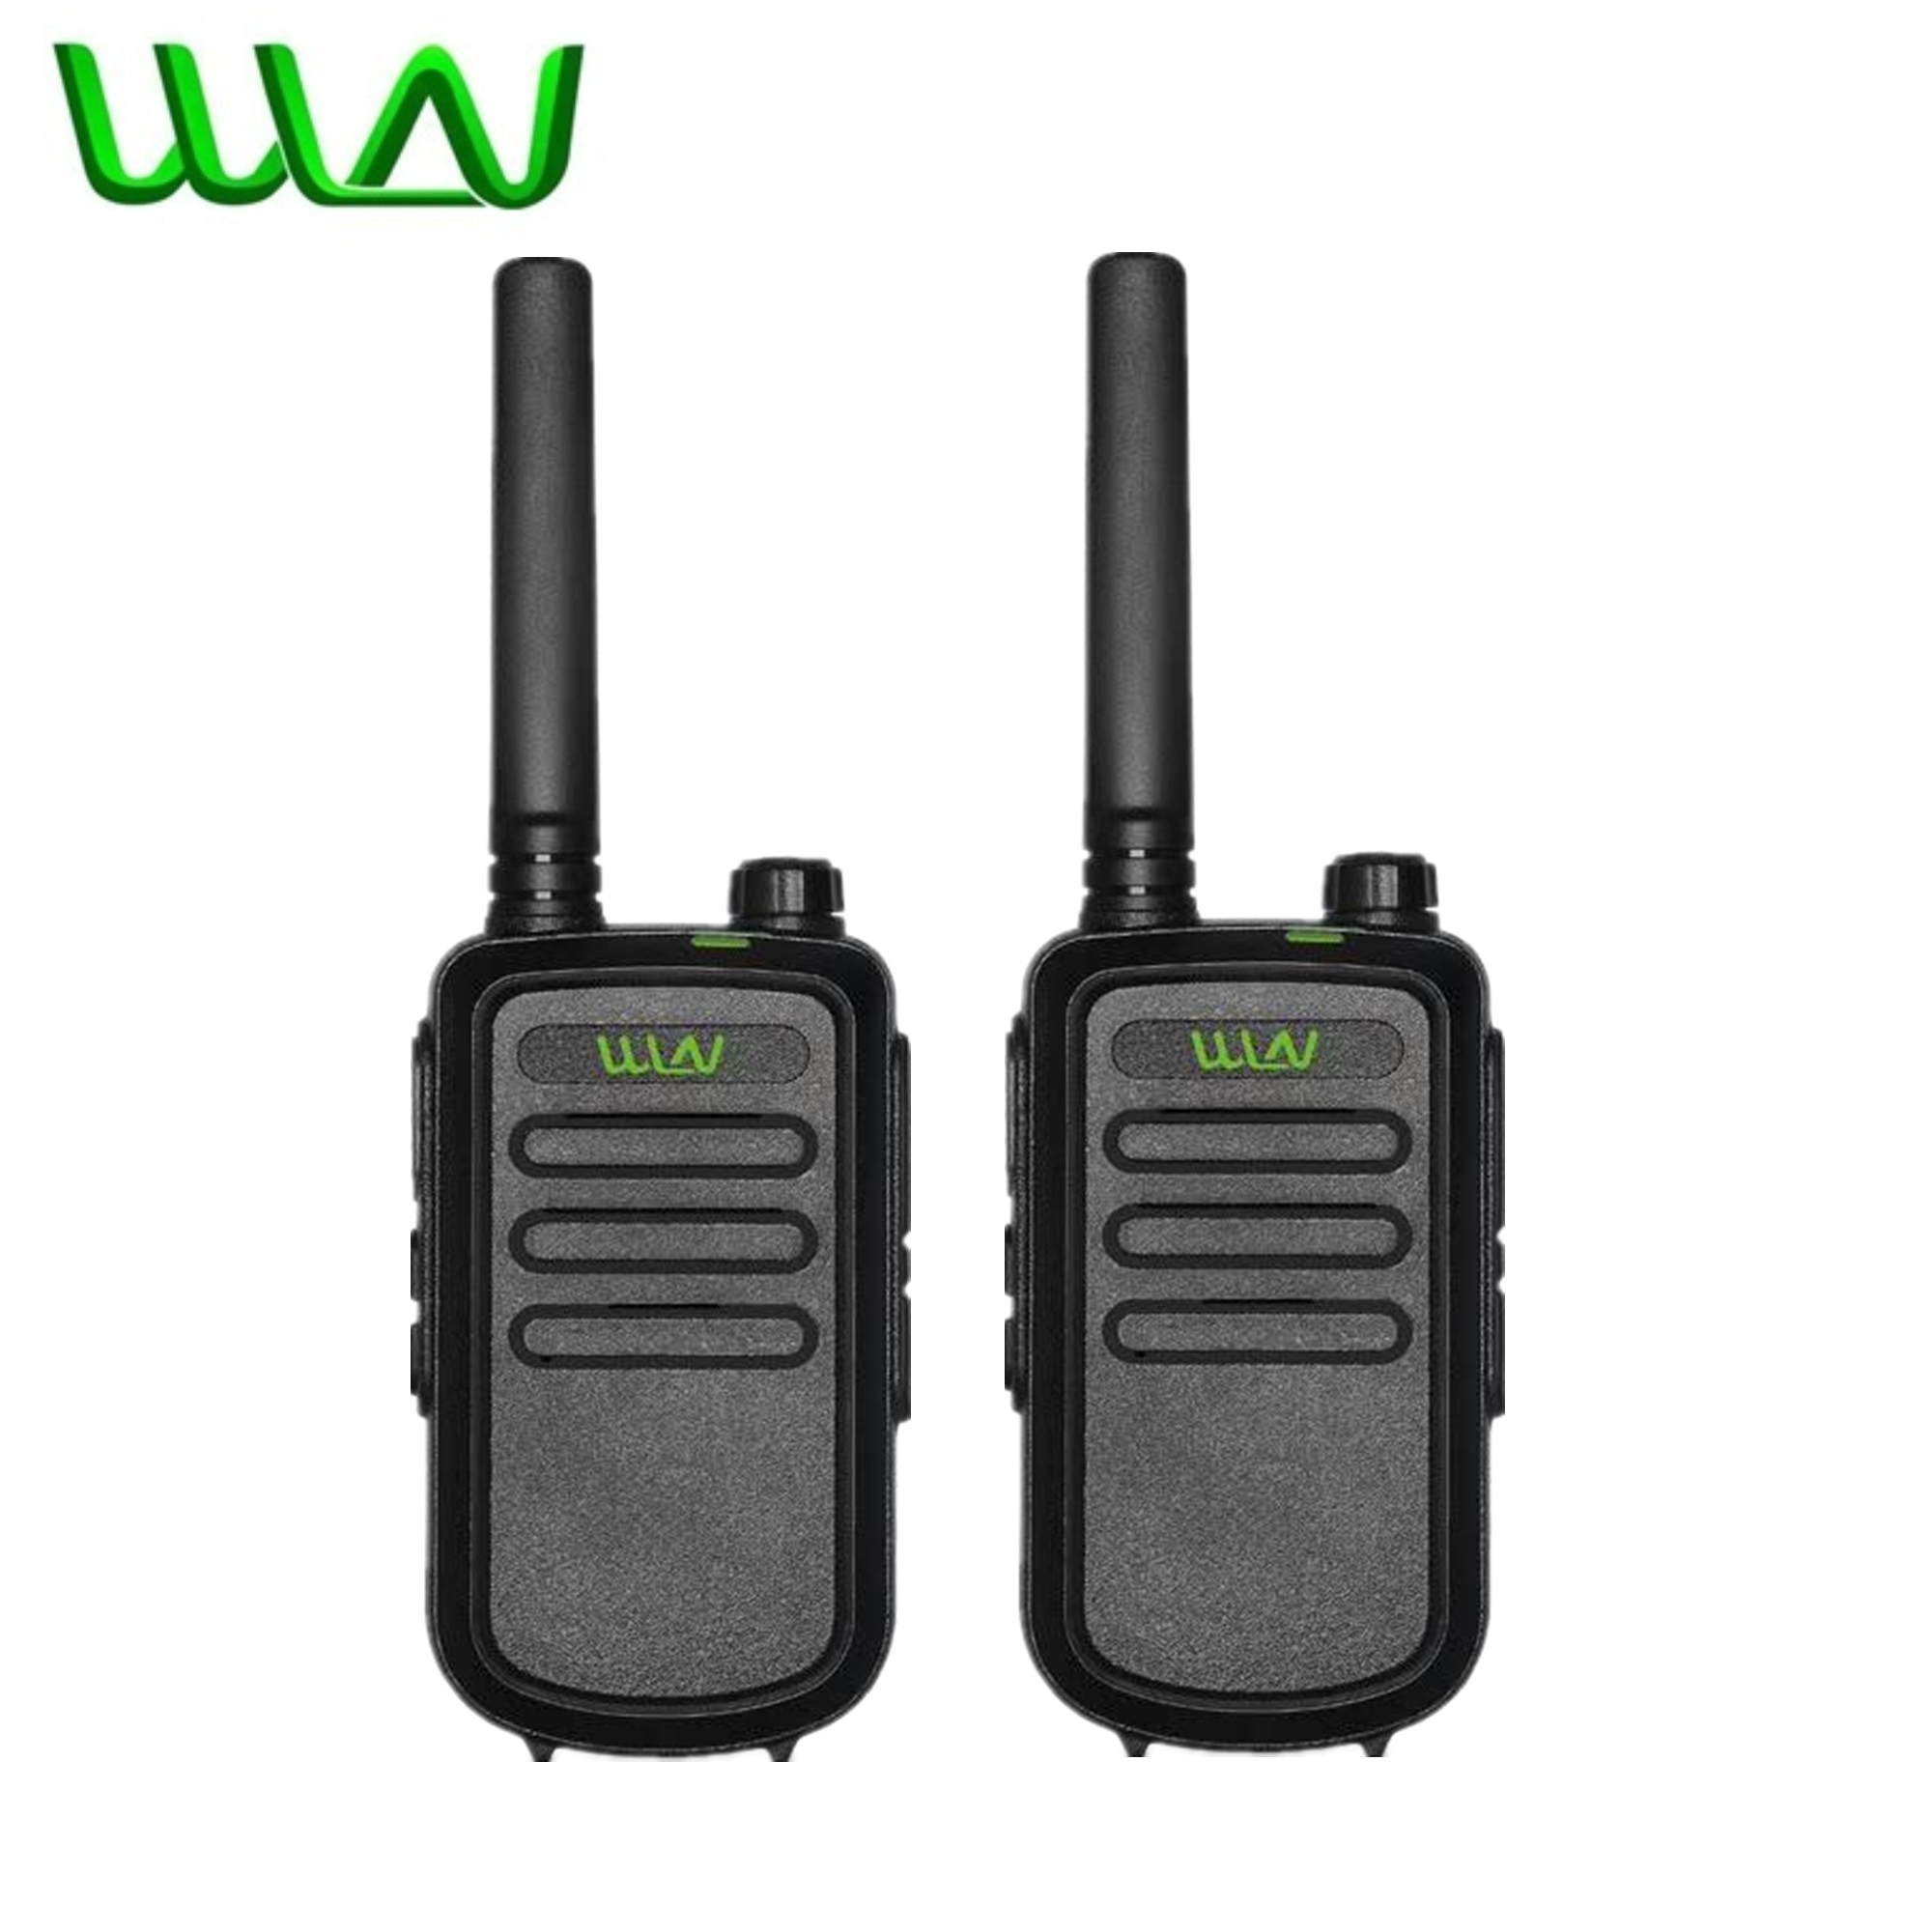 2 pièces 100% Original WLN KD C10 talkie walkie Uhf 400 470MHz 16 canaux Mini Station de Radio bidirectionnelle FMR PMR KDC10 Ham Radio Amador-in Talkie Walkie from Téléphones portables et télécommunications on AliExpress - 11.11_Double 11_Singles' Day 1